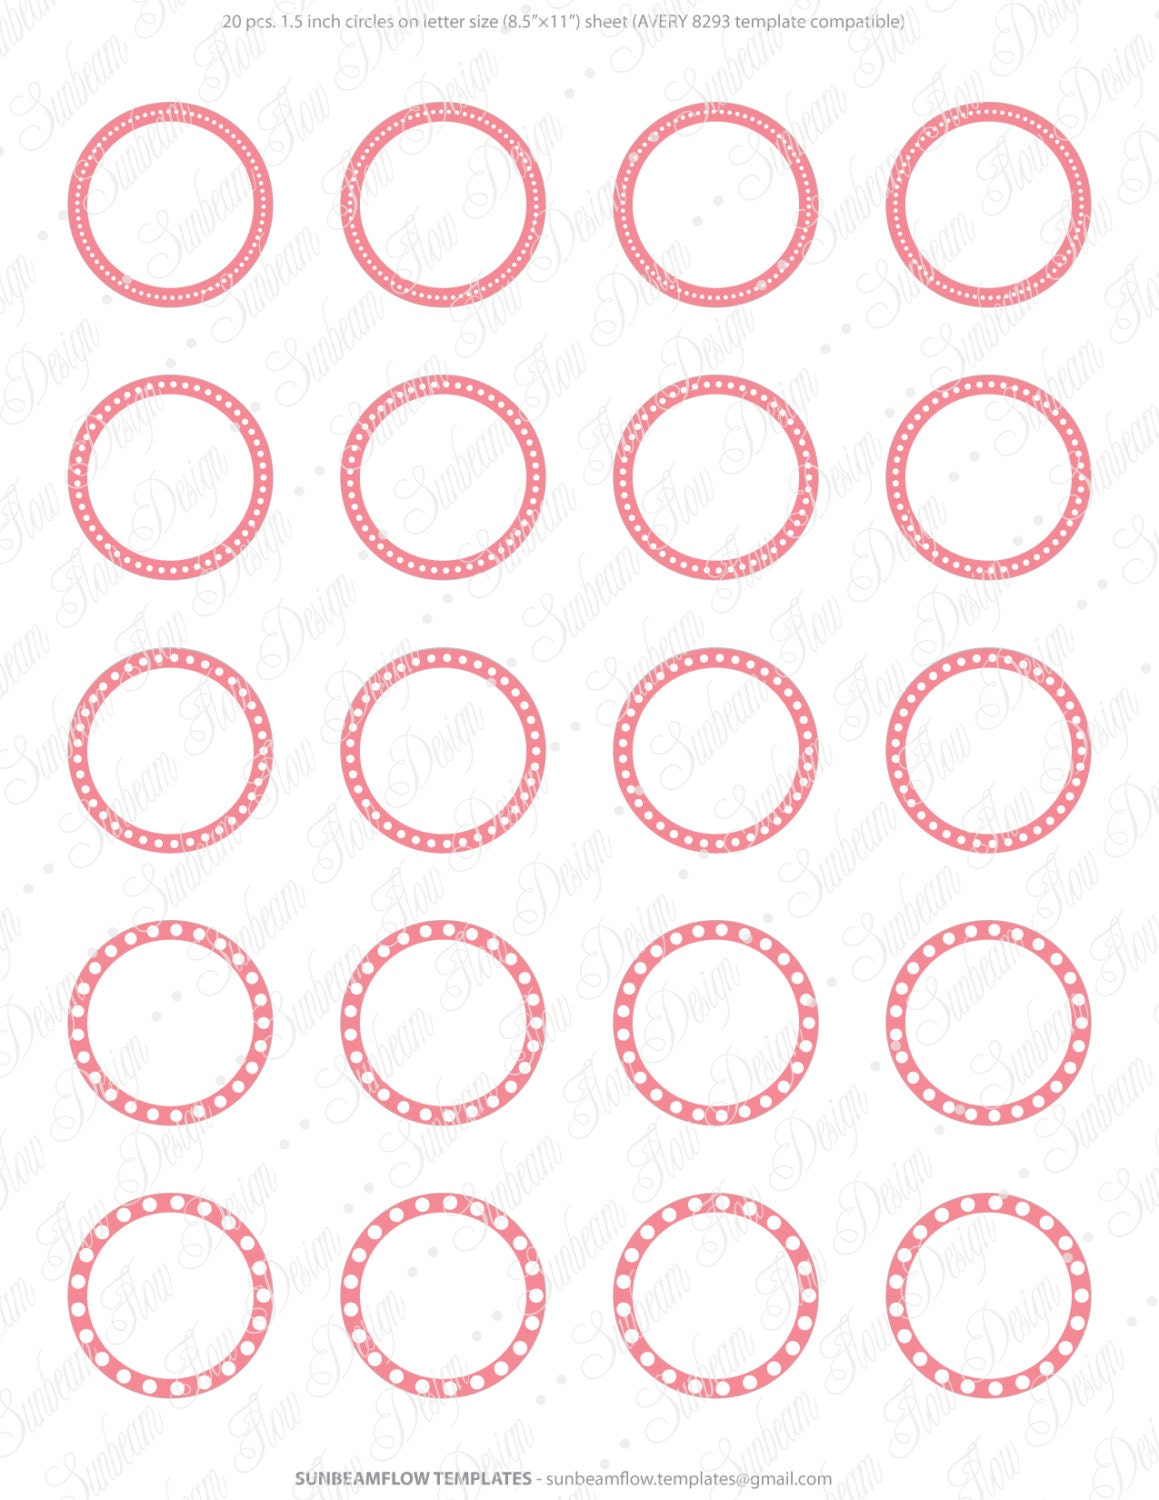 Avery 8293 Template Paper Label Sticker Templates Round Label